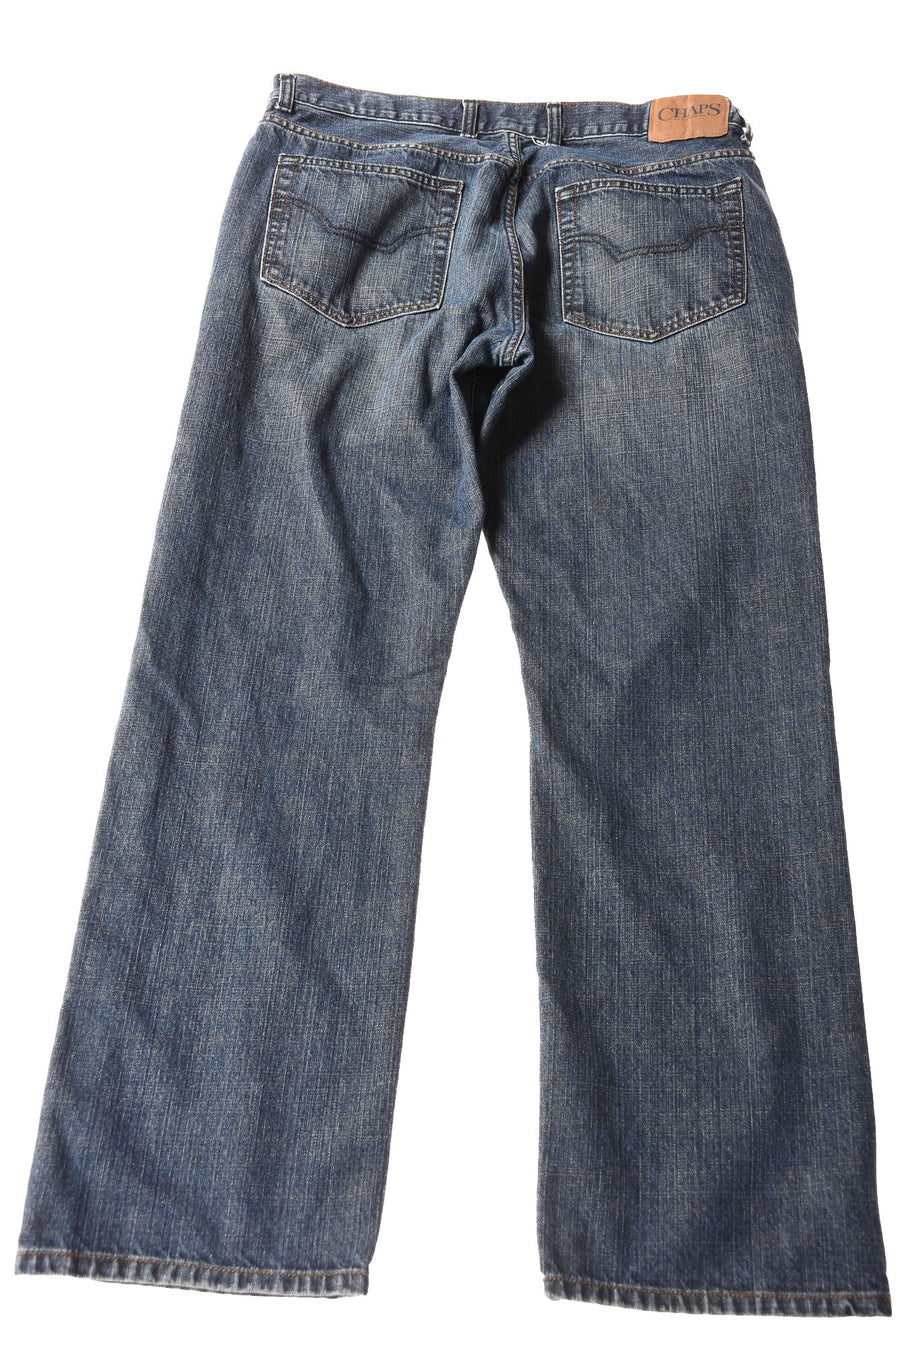 USED Chaps Men's Jeans 36x32 Blue